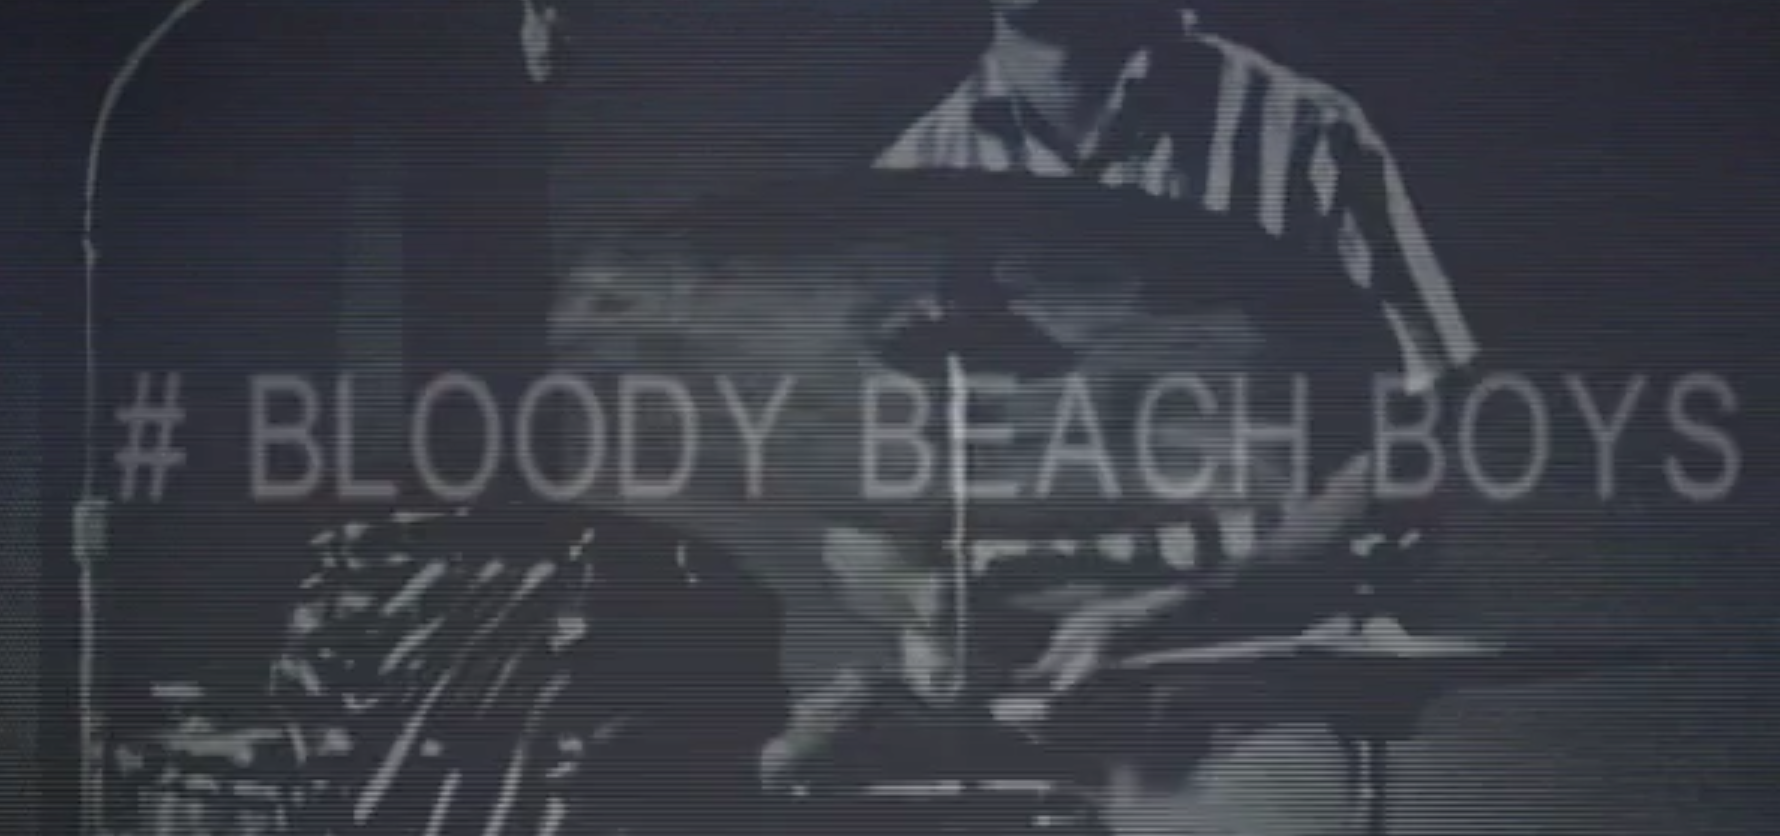 bloody beach boys